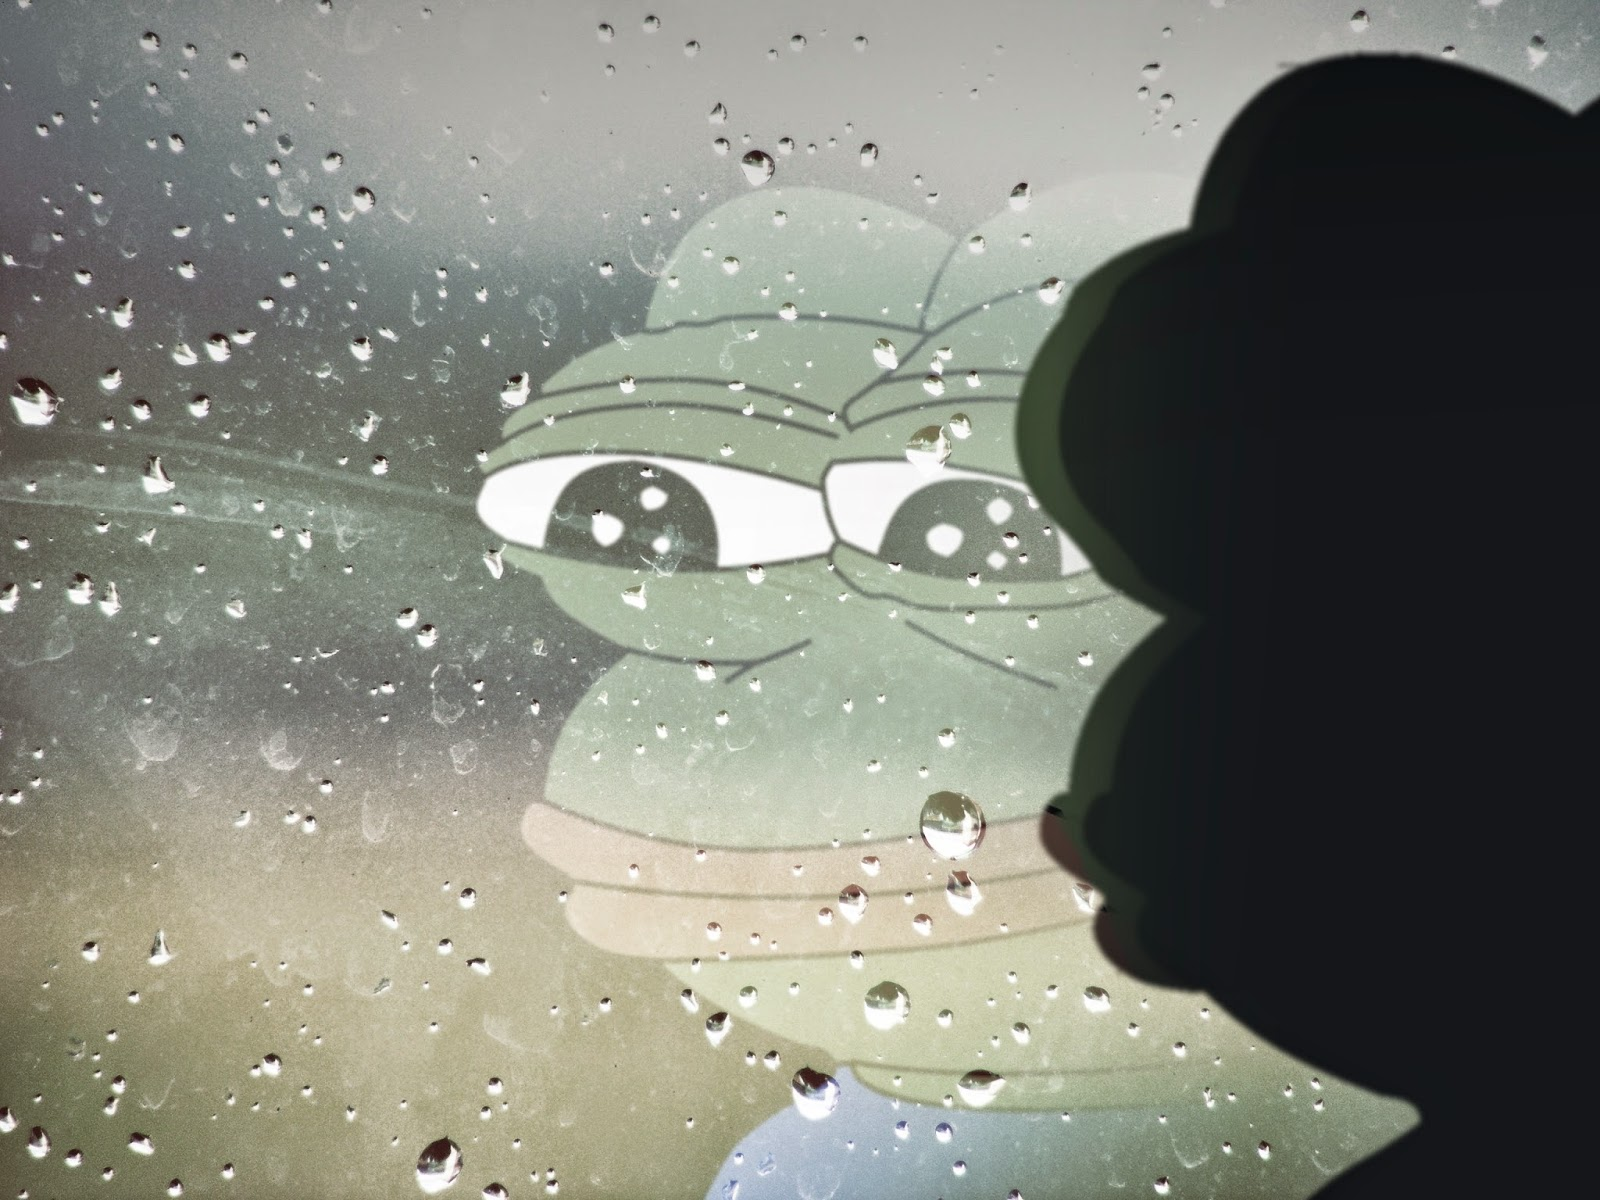 Kermit looking out the rainy window